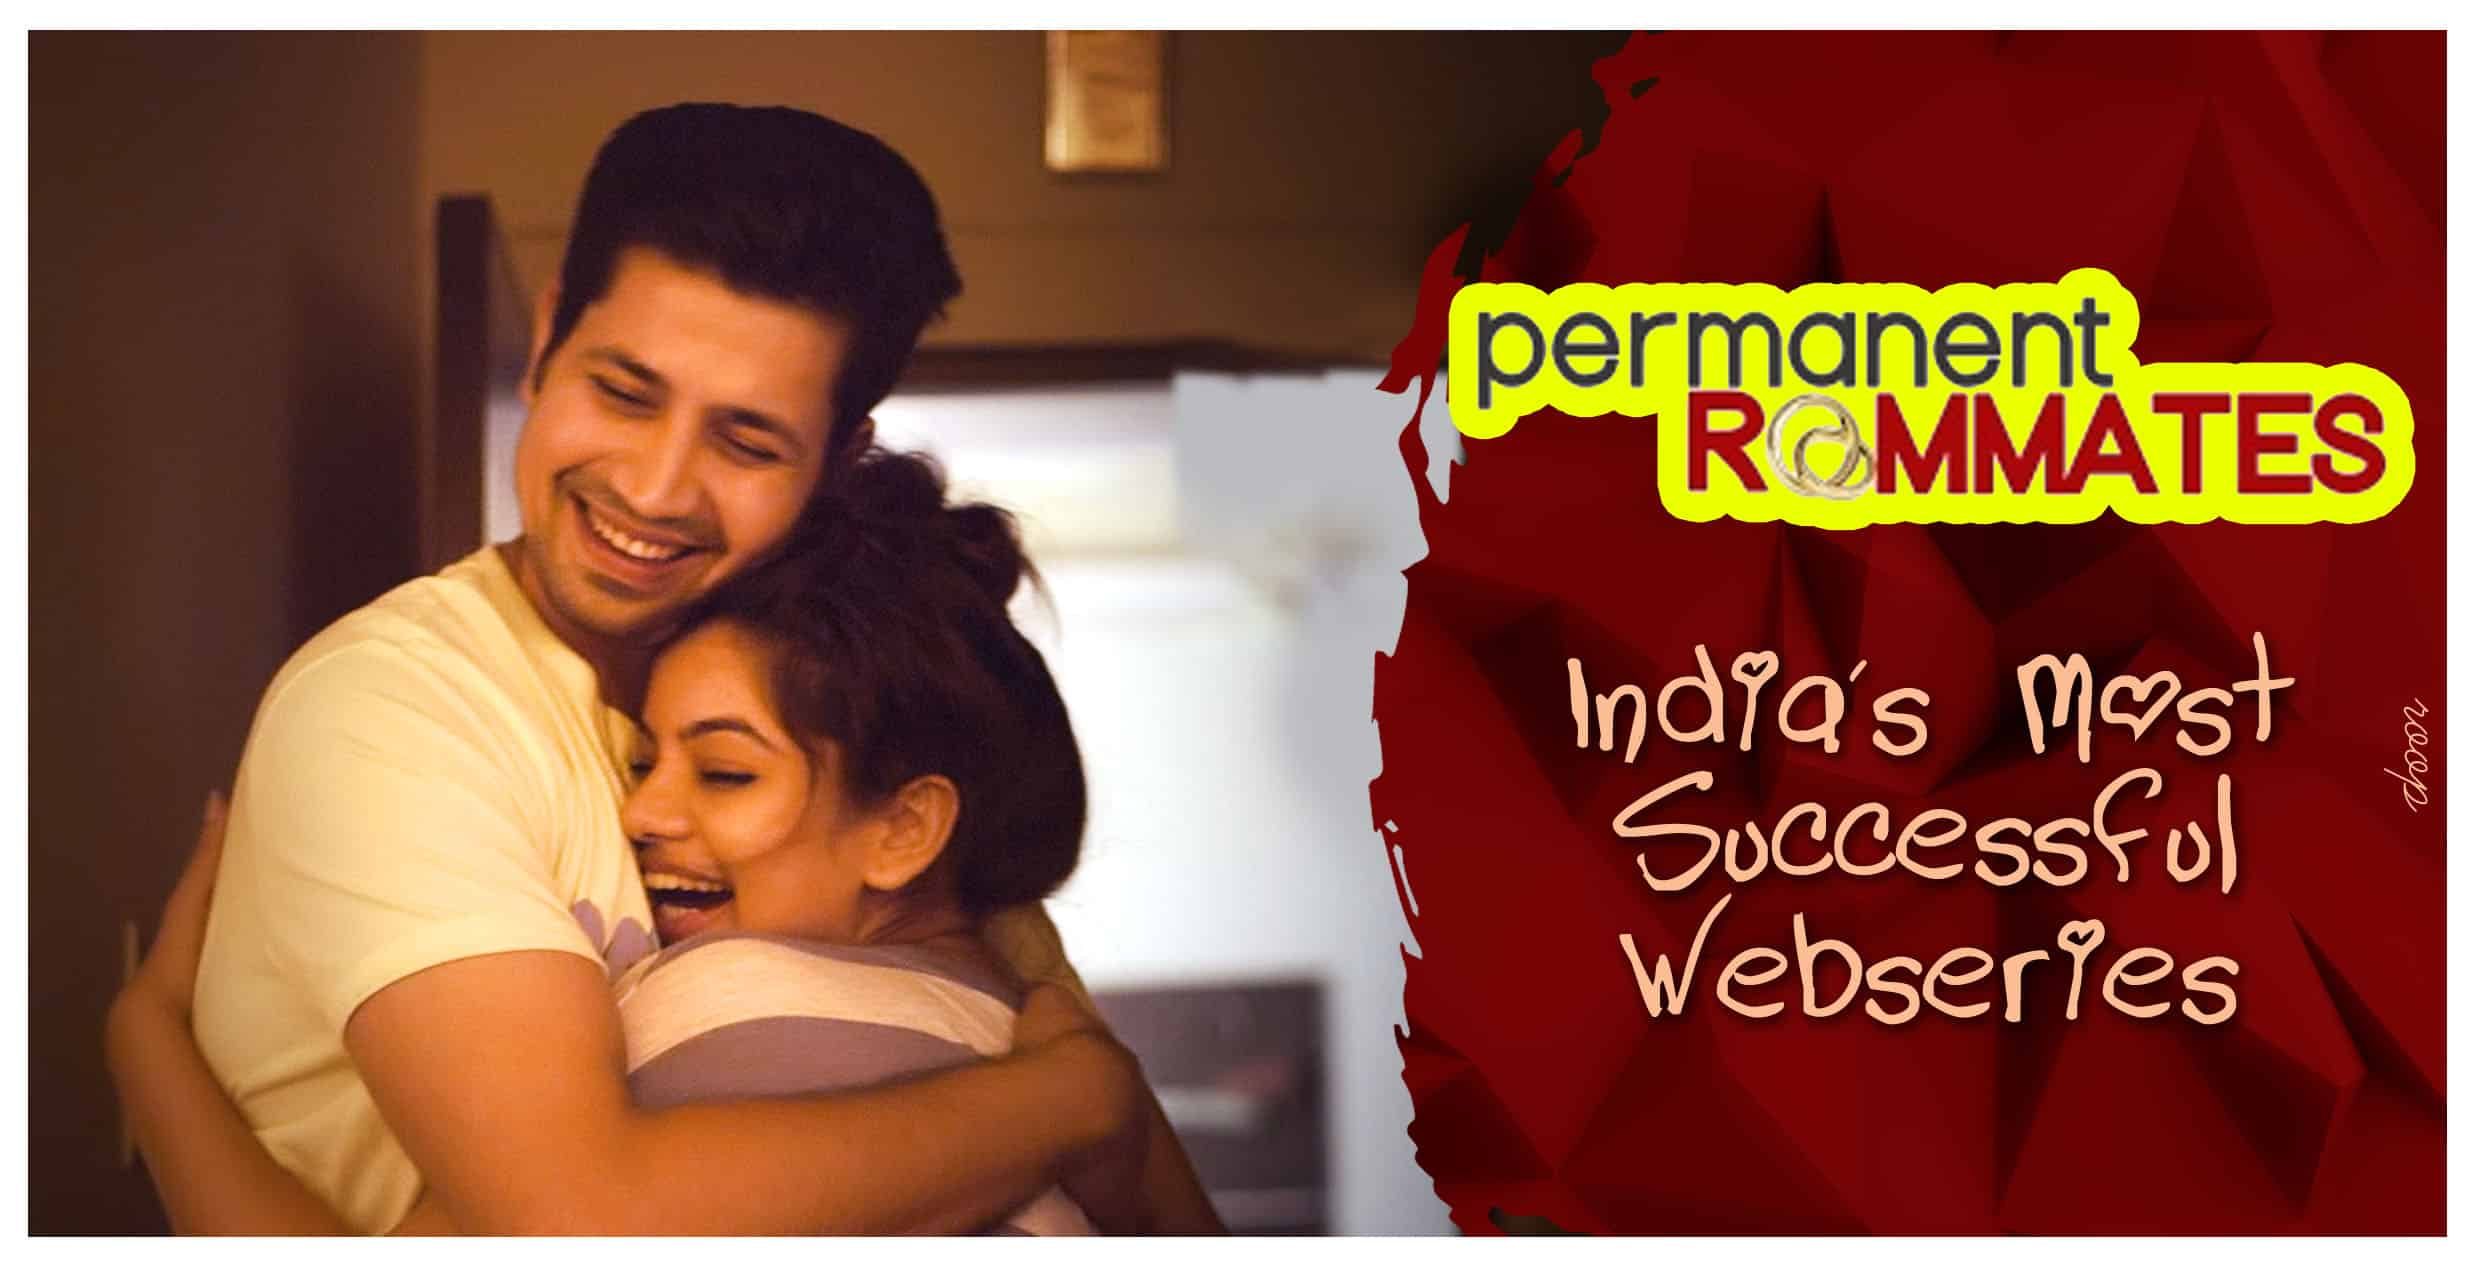 Indian web-series which have charted 8+ IMDb Ratings 8